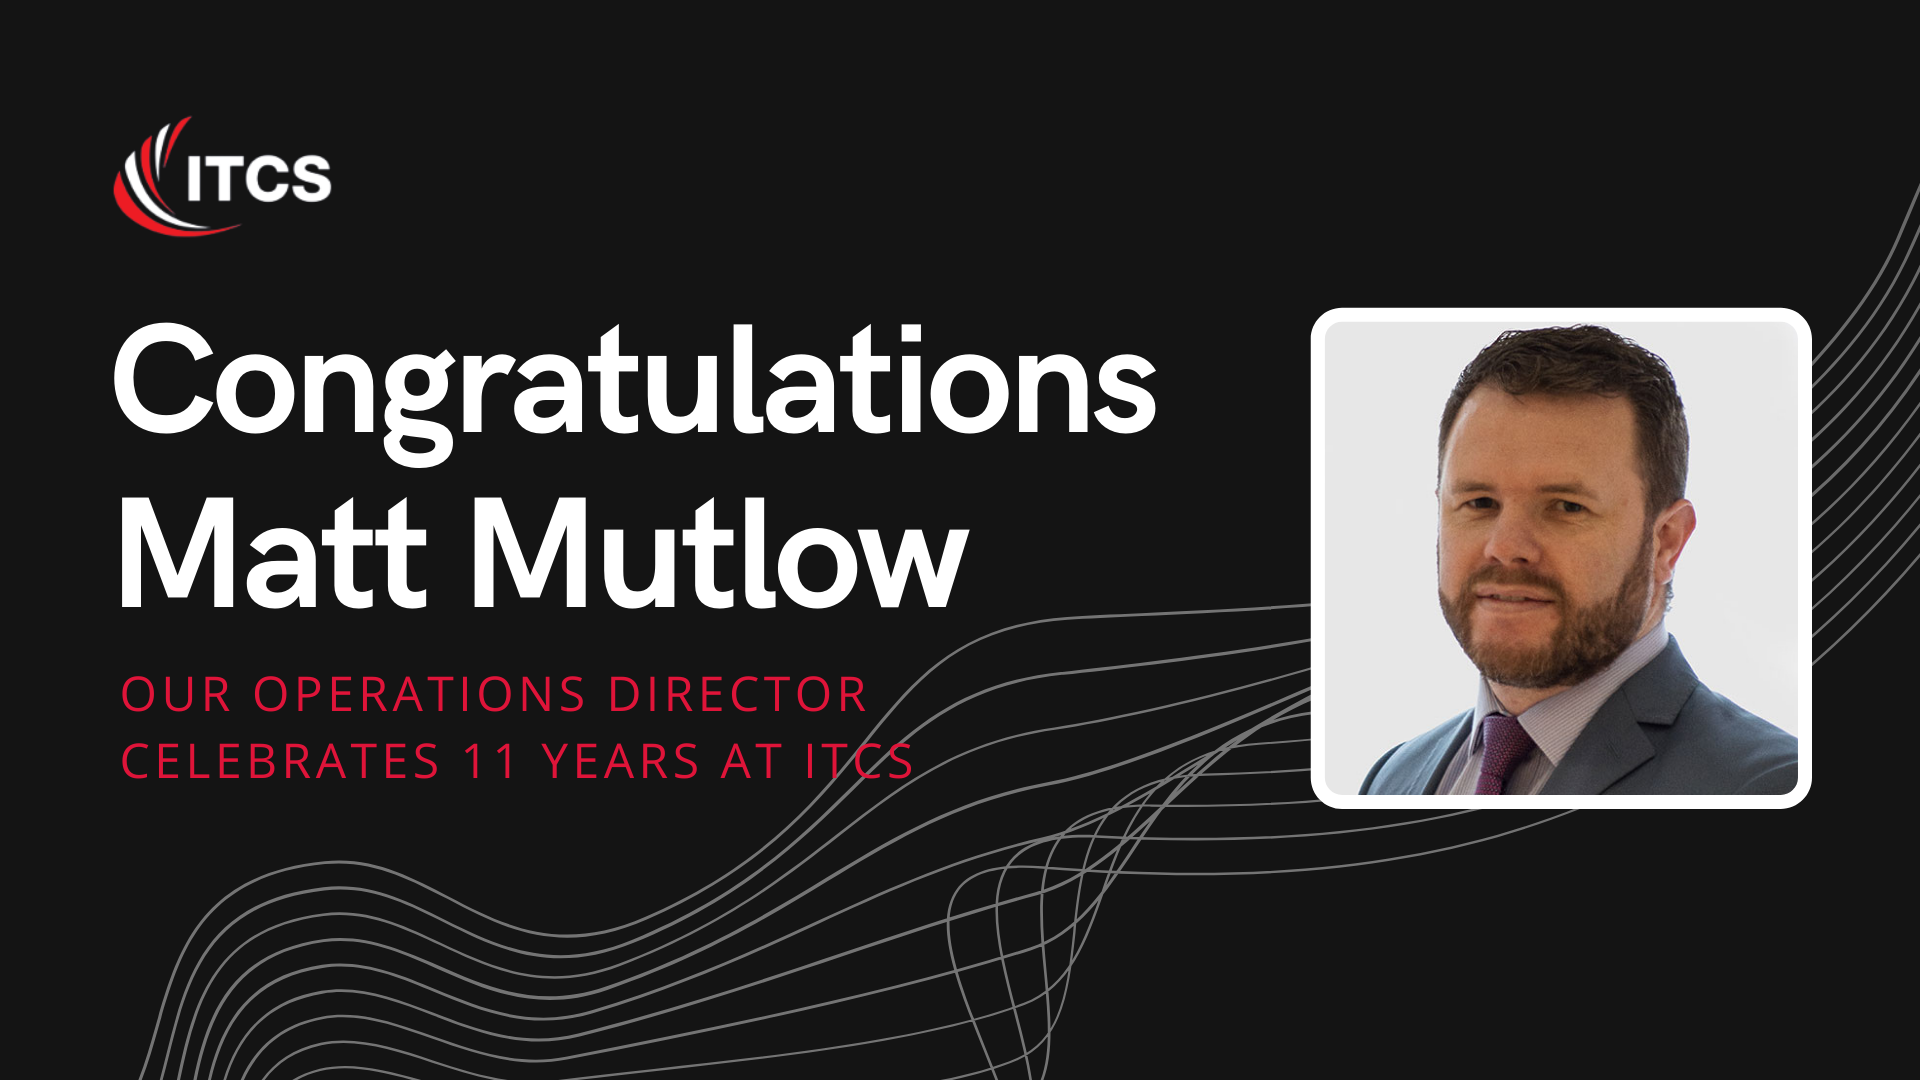 Operations Director, Matthew Mutlow, Celebrates over 10 years at ITCS